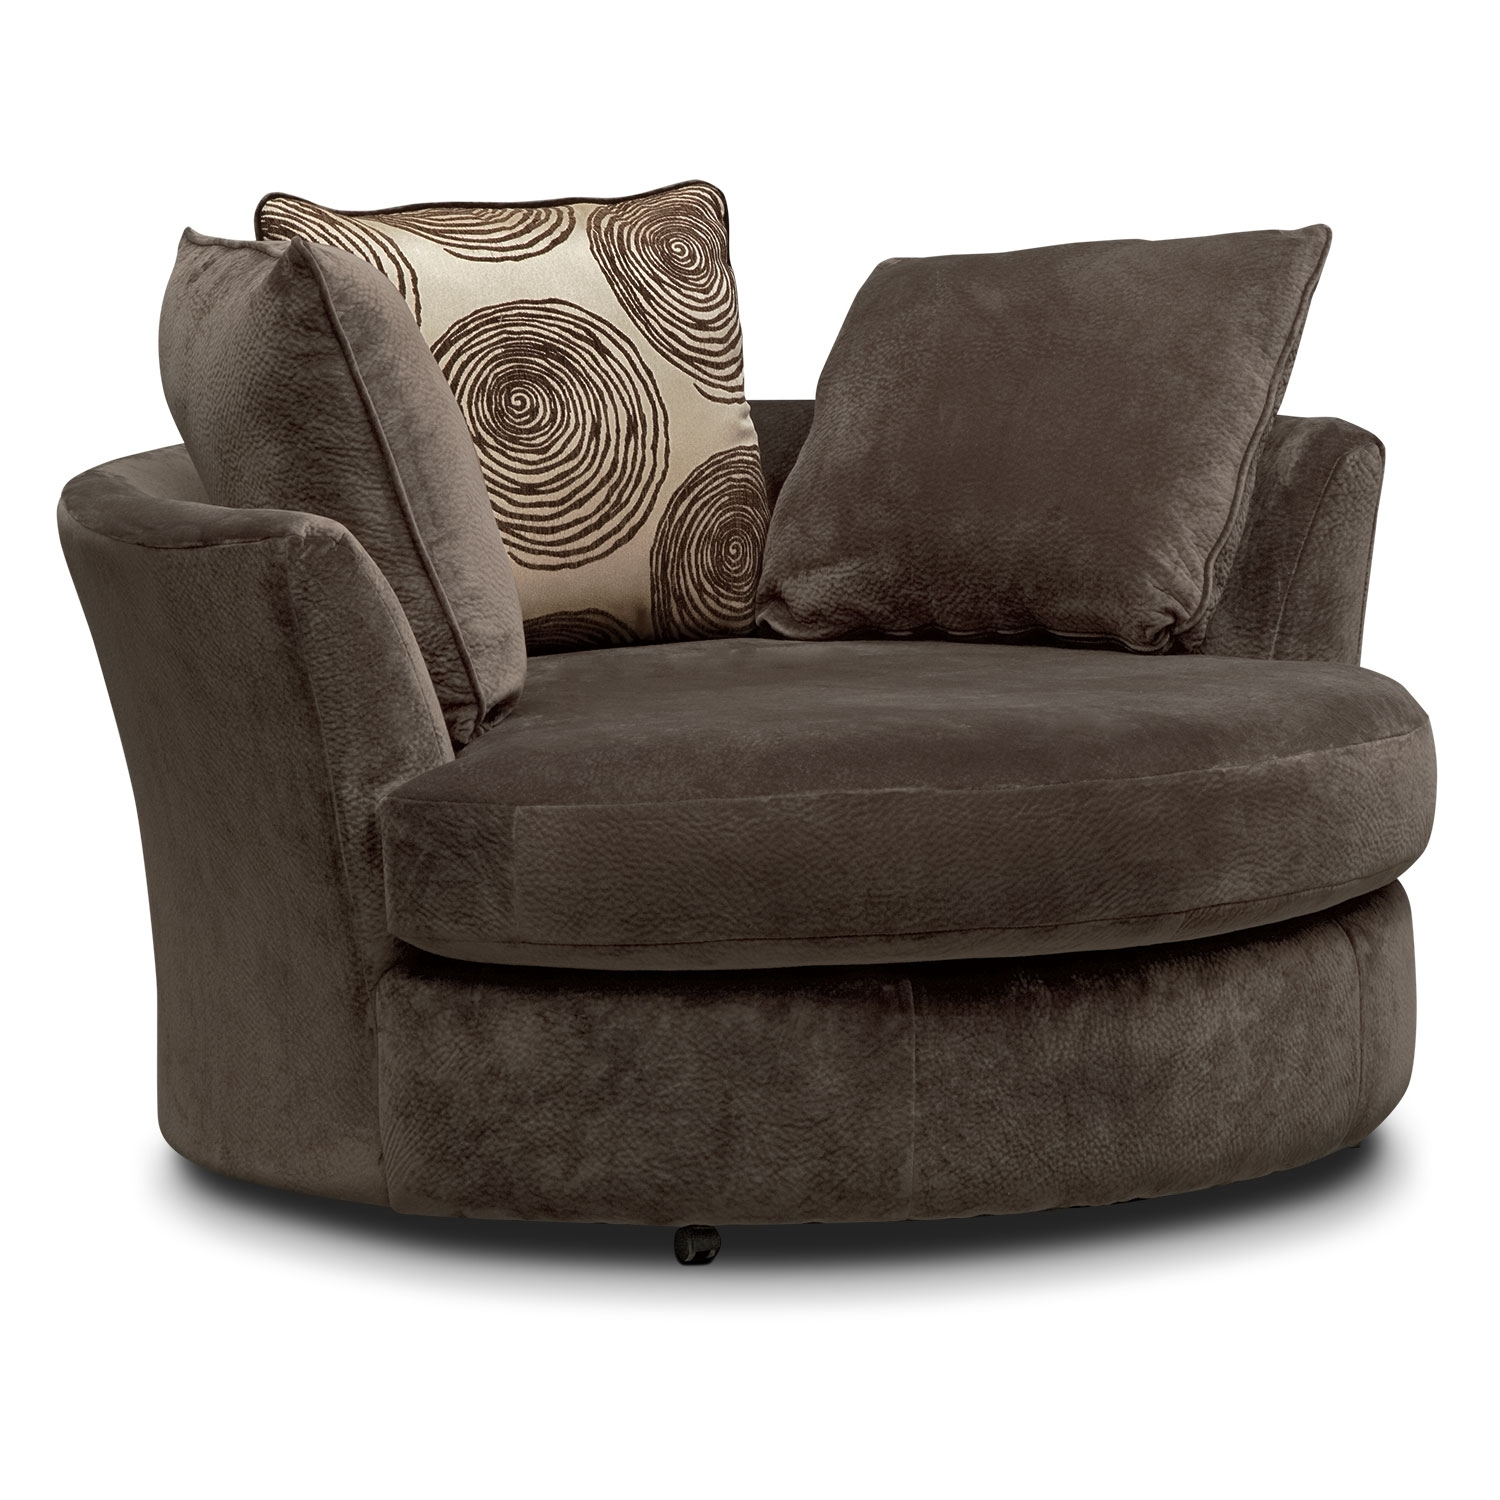 Popular Photo of Sofas With Swivel Chair